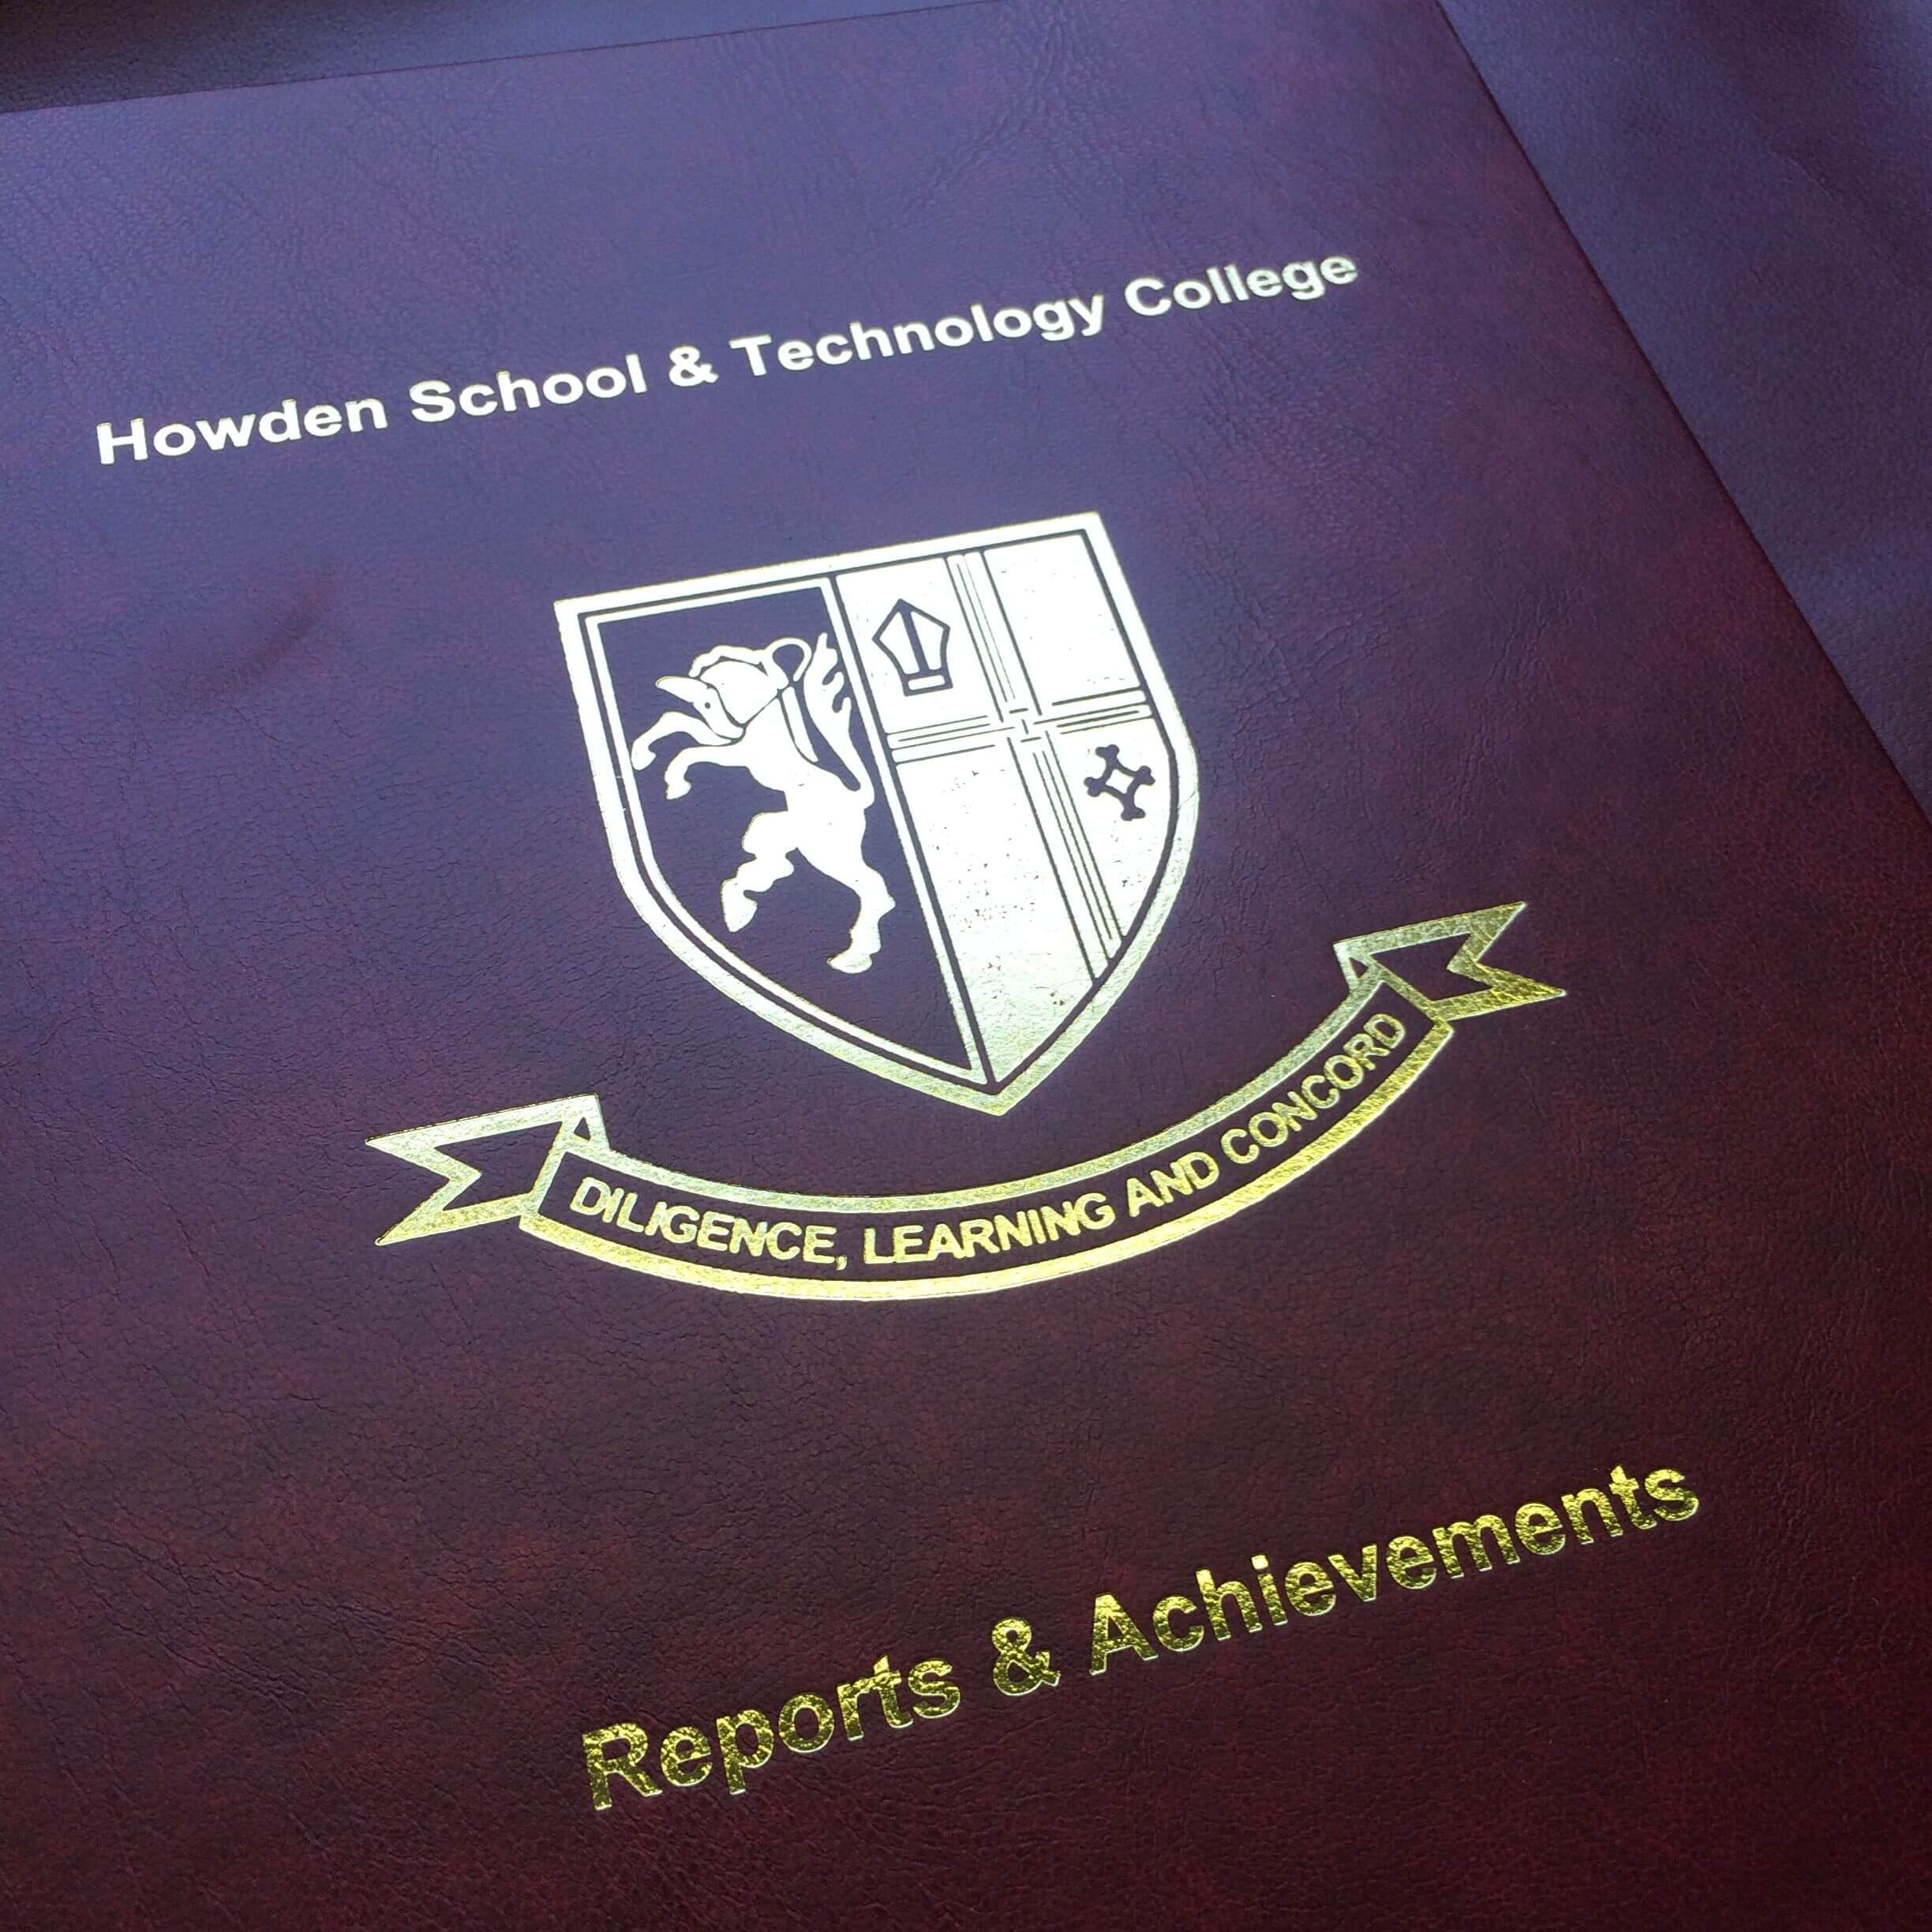 Howden School Records and Achievements